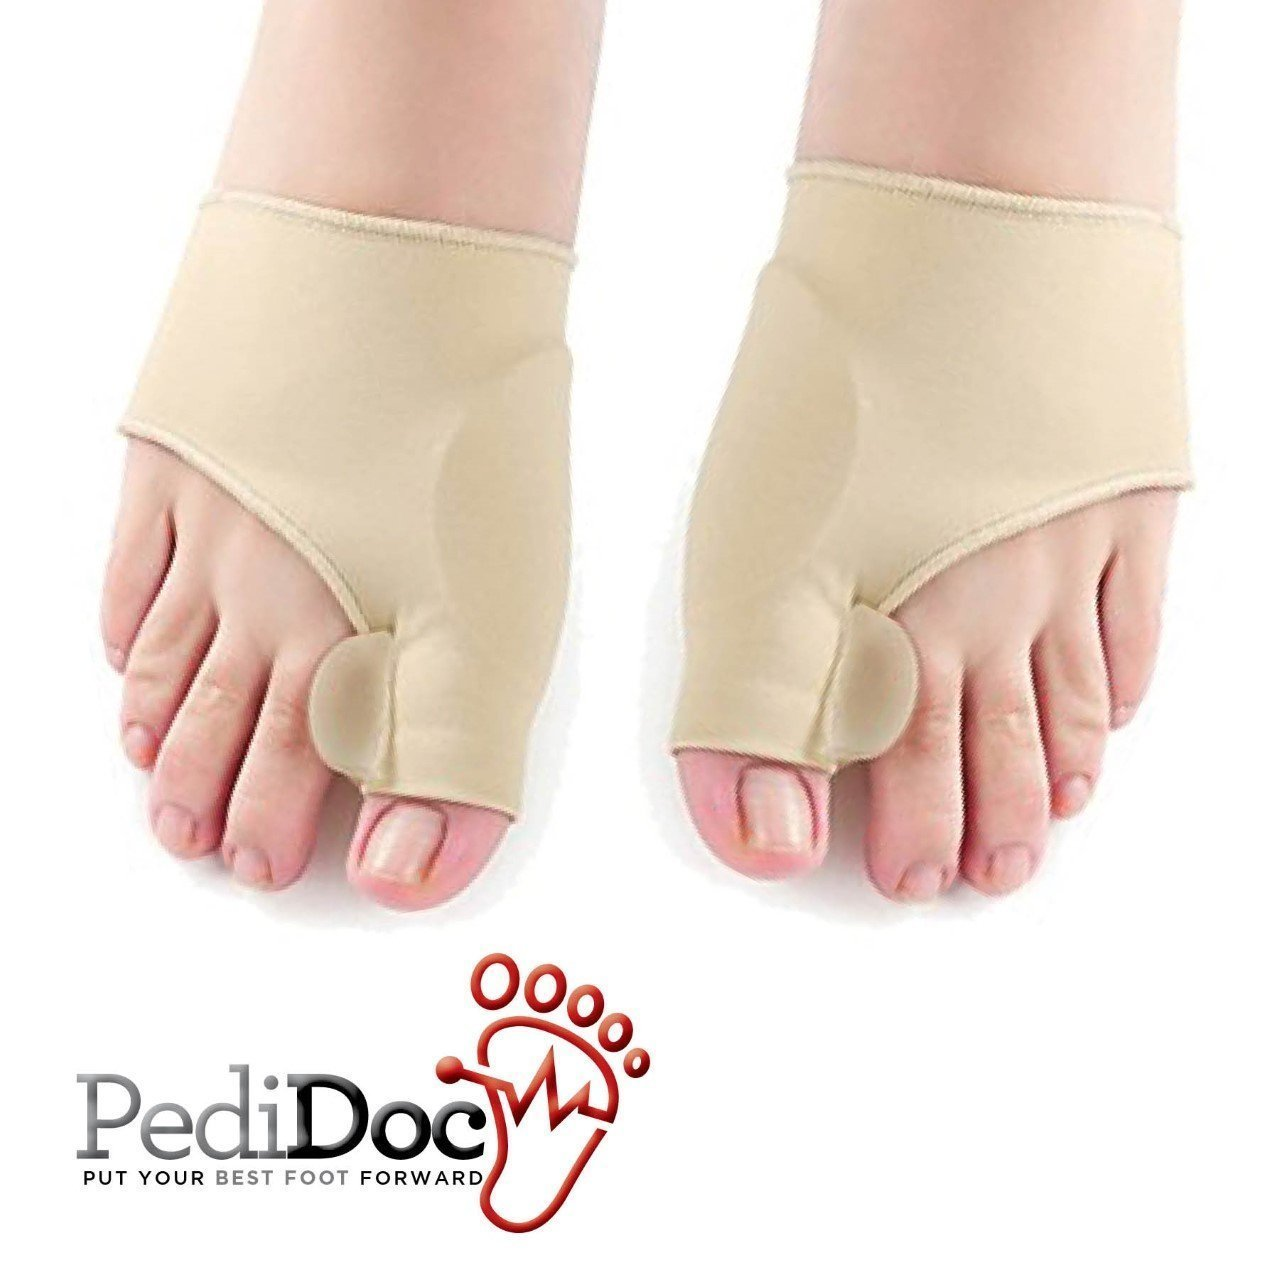 PediDoc™ Bunion Corrector – Bunion Relief Sleeves Bunion Pads Brace Cushions Toe Straightener with Gel Toe Separator, Spacer, Straightener and Spreader – Hallux Valgus Relief Big Toe Alignment